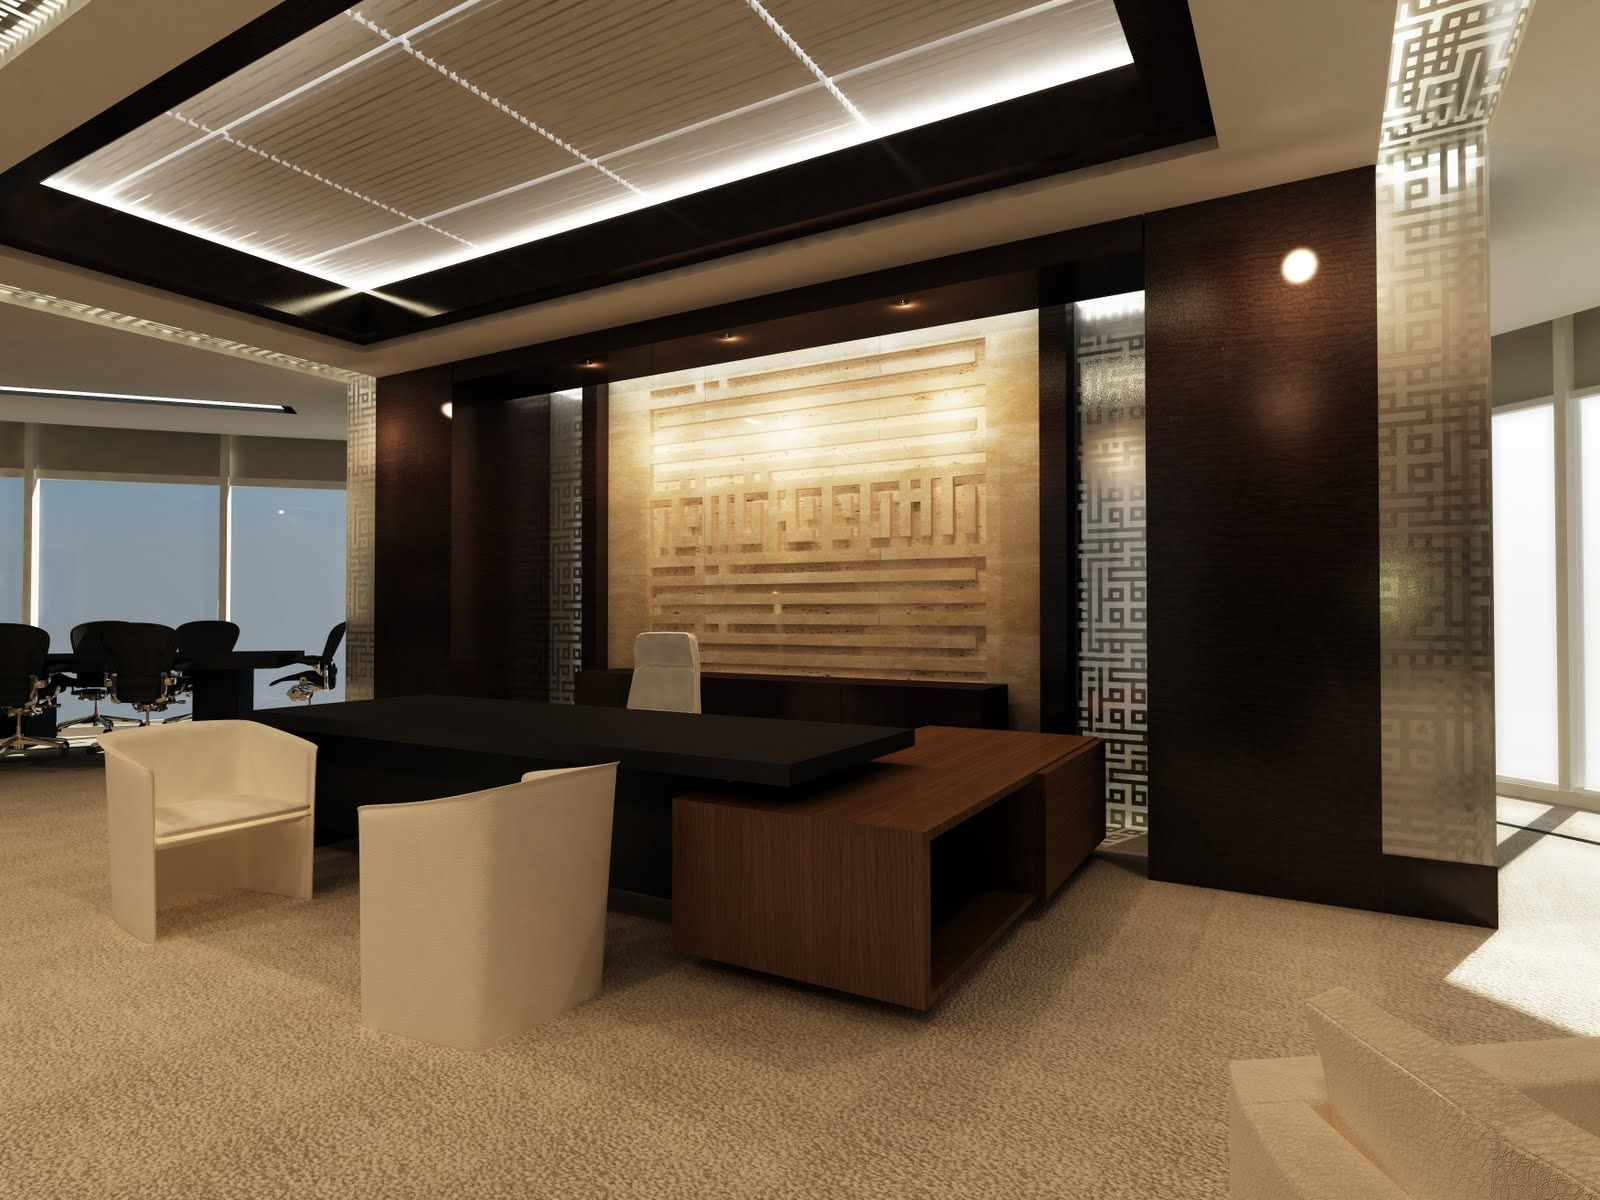 Office Interior Design Intended For Office Interior Design Ideas Mrliu  OFFICE DESIGN  Office cabin design Office interior design ve Office